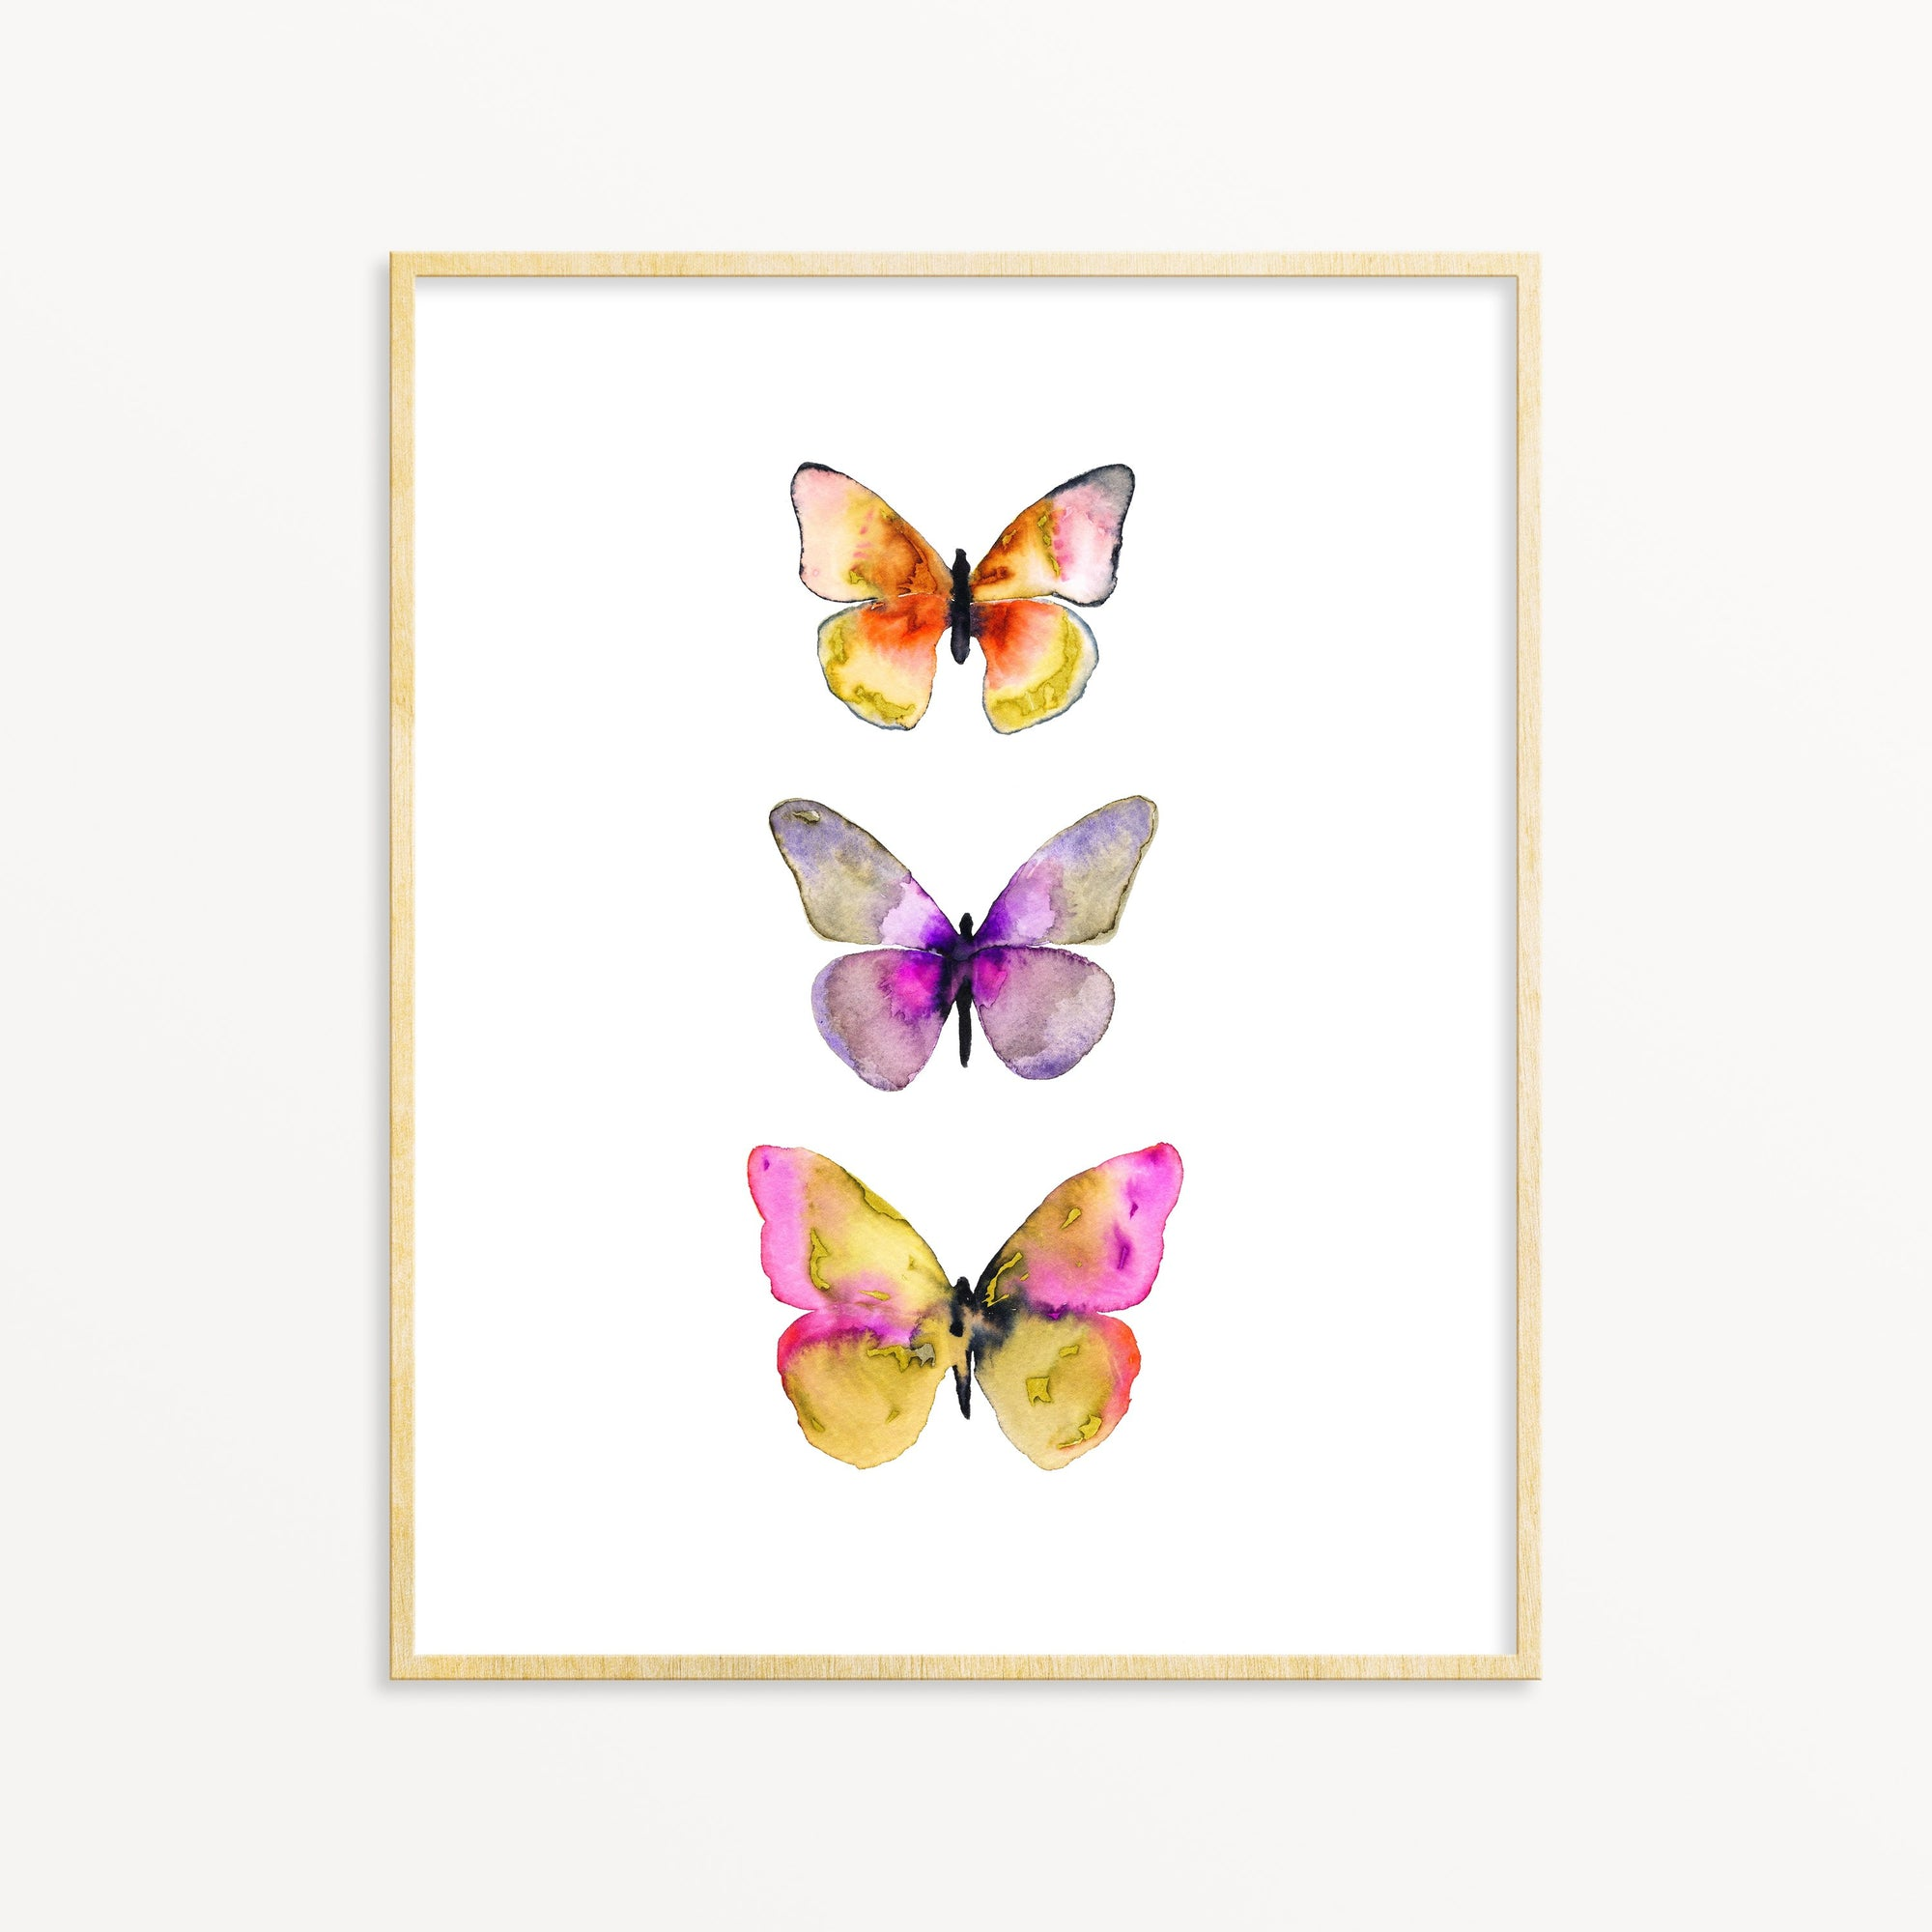 3 Butterflies No. 5